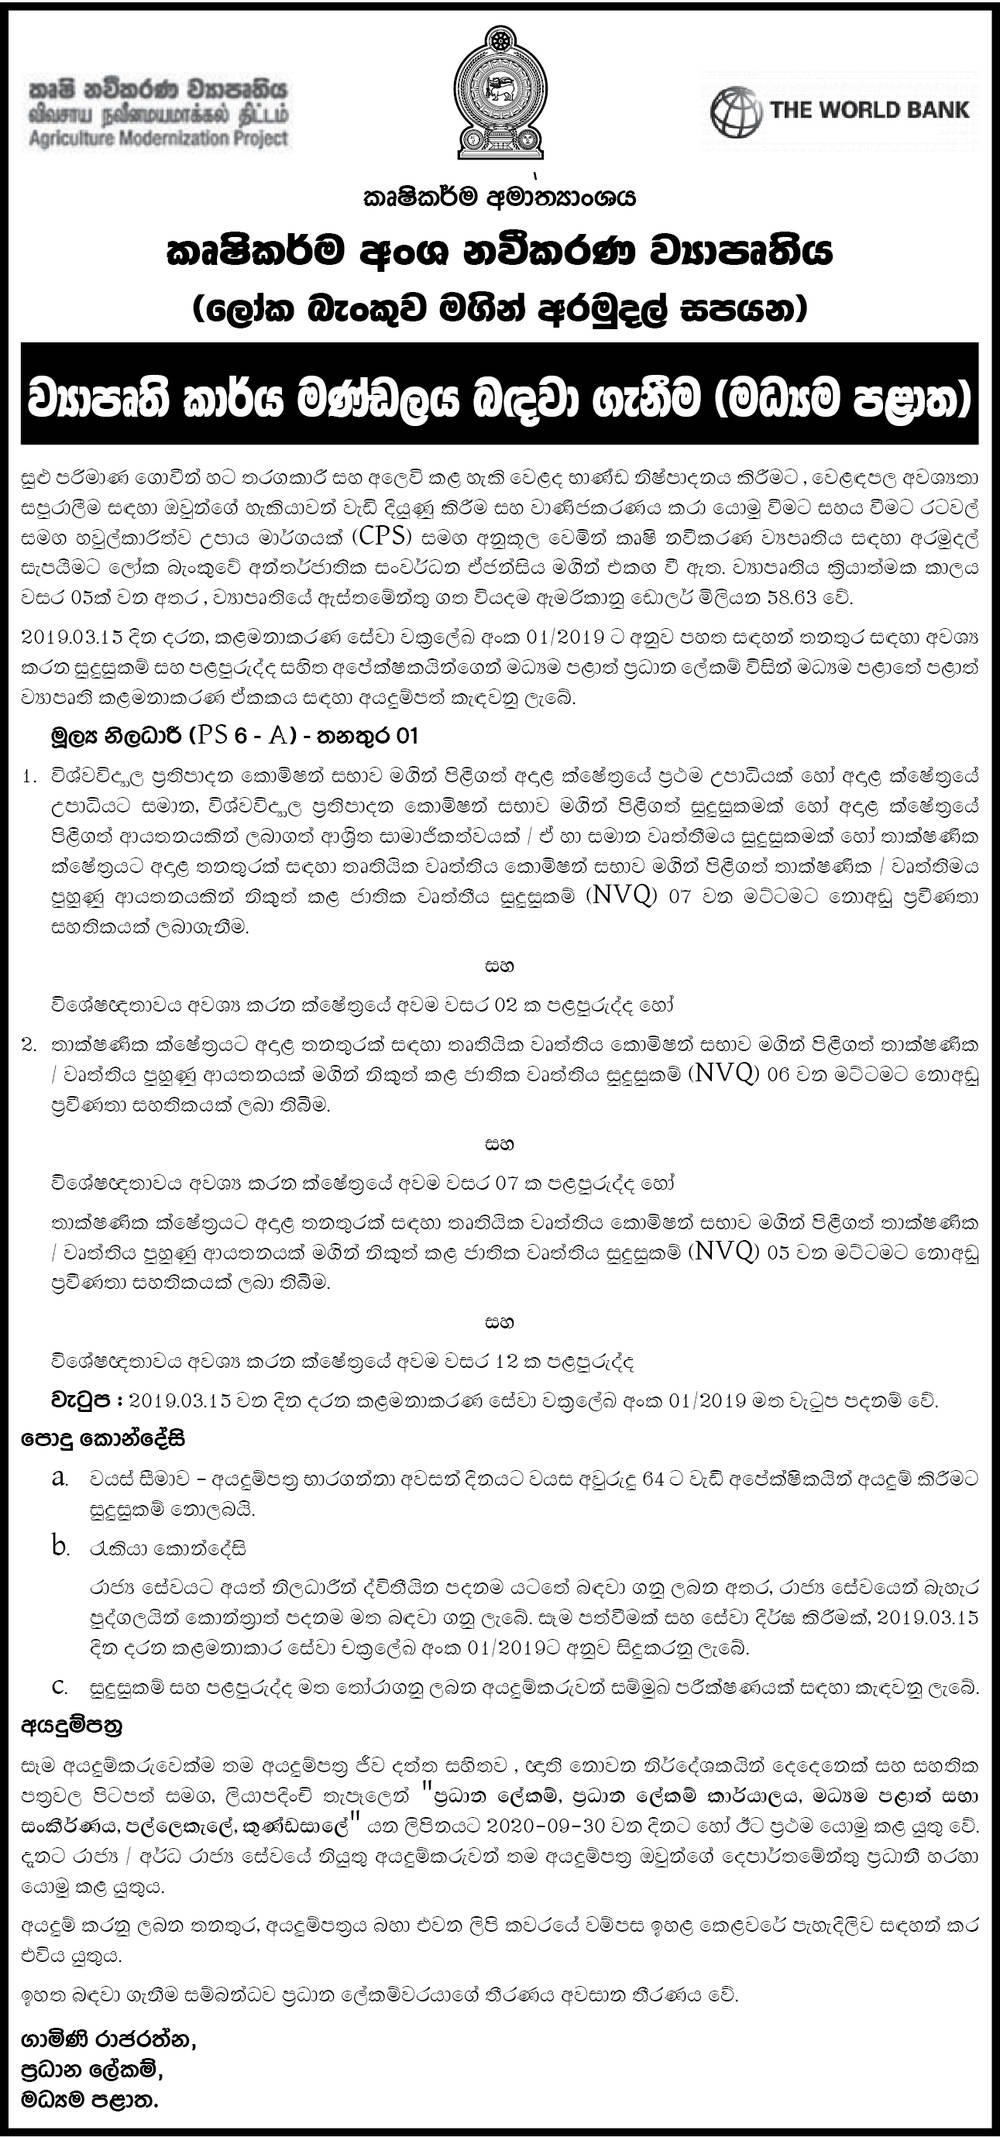 Finance Officer - Ministry of Agriculture